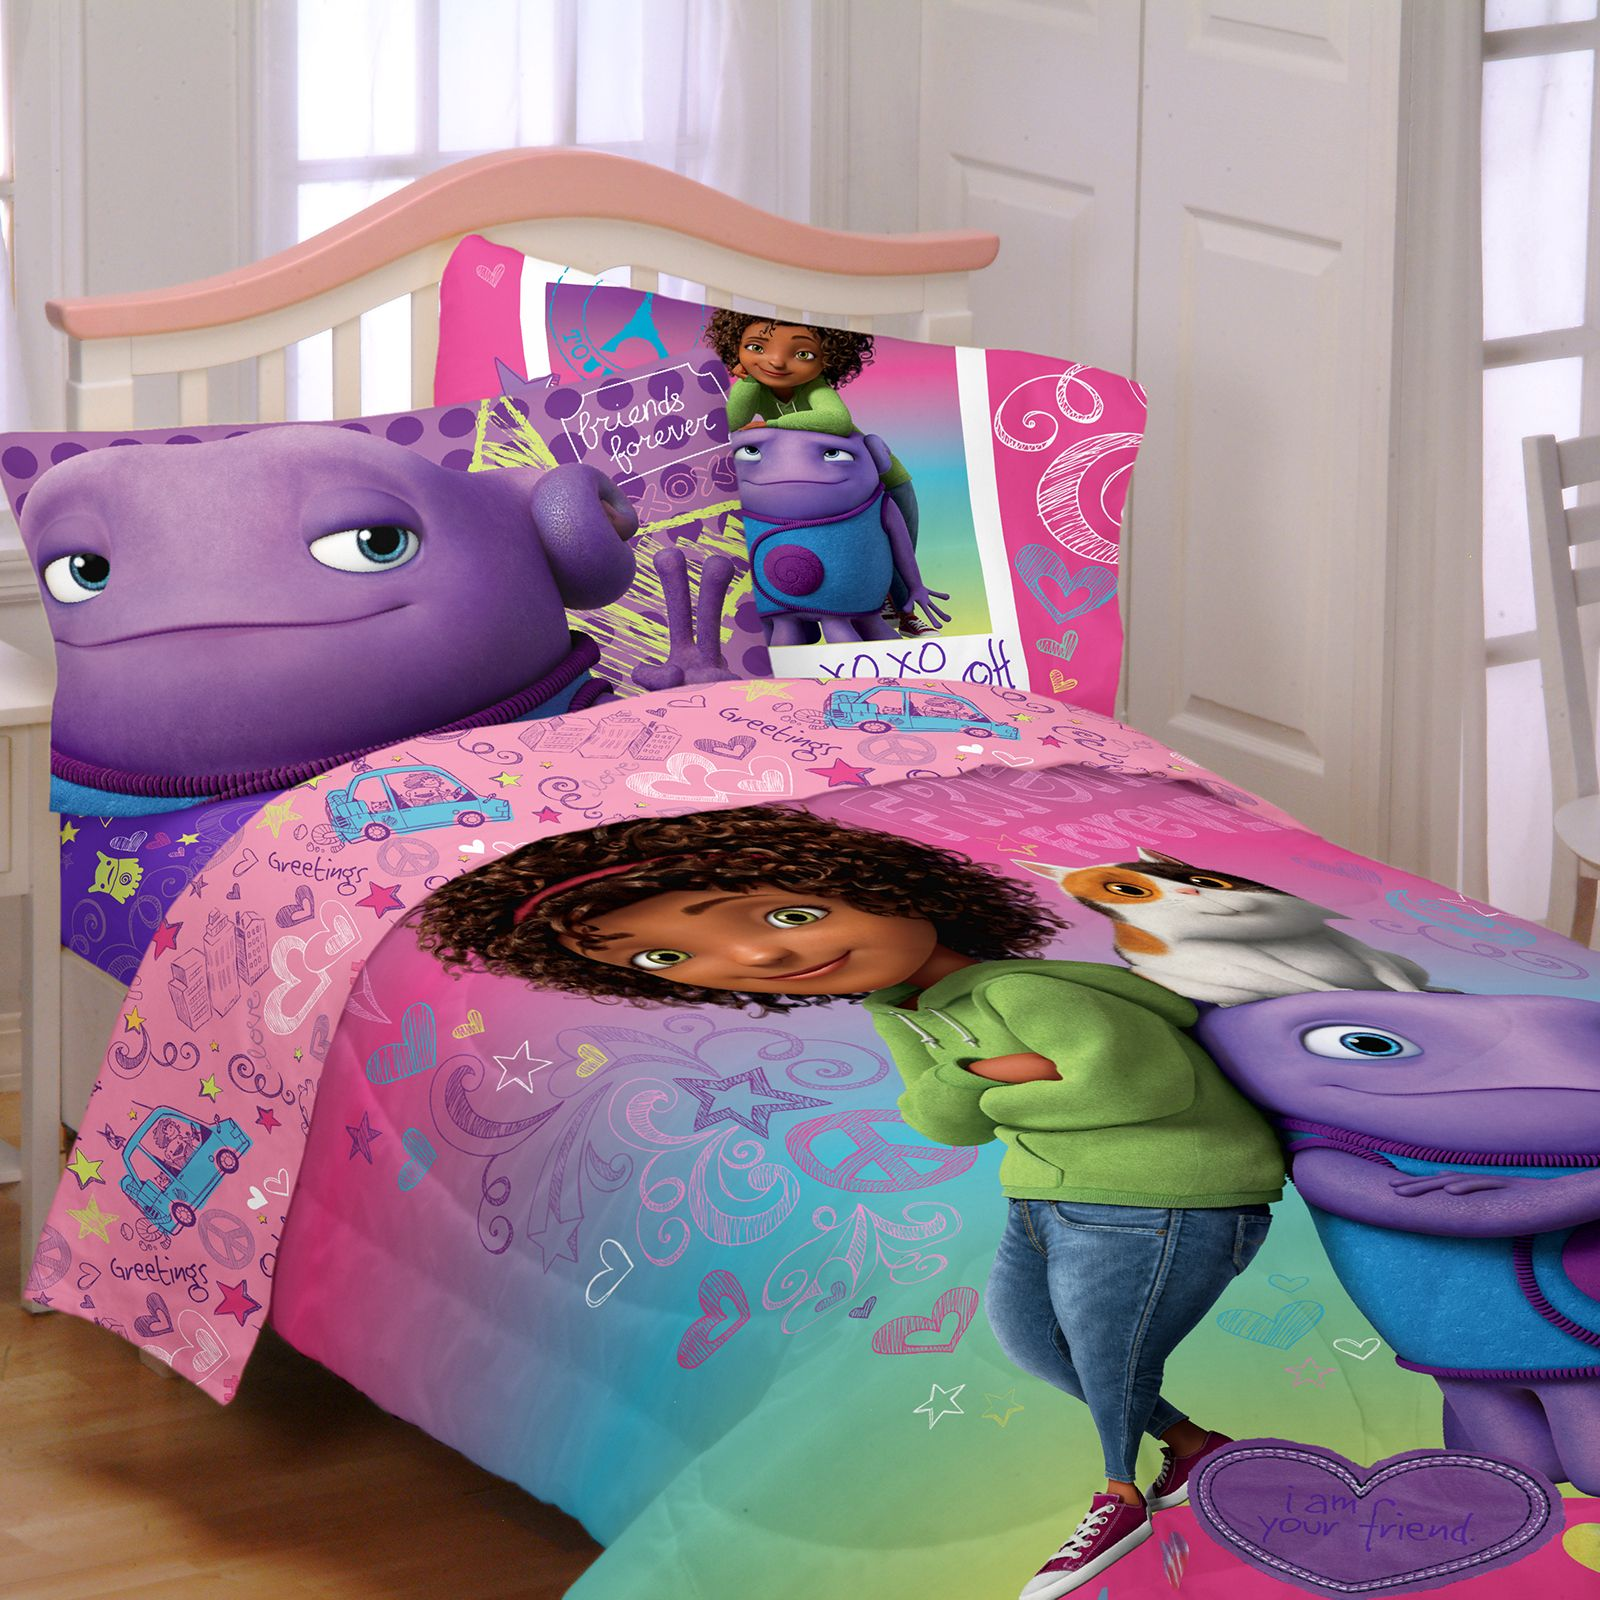 Characters of dreamworks d dreamworks animation photo pictures to pin - New Bedding Featuring Tip Oh And Pig From The Dreamworks Movie Home Lots Of